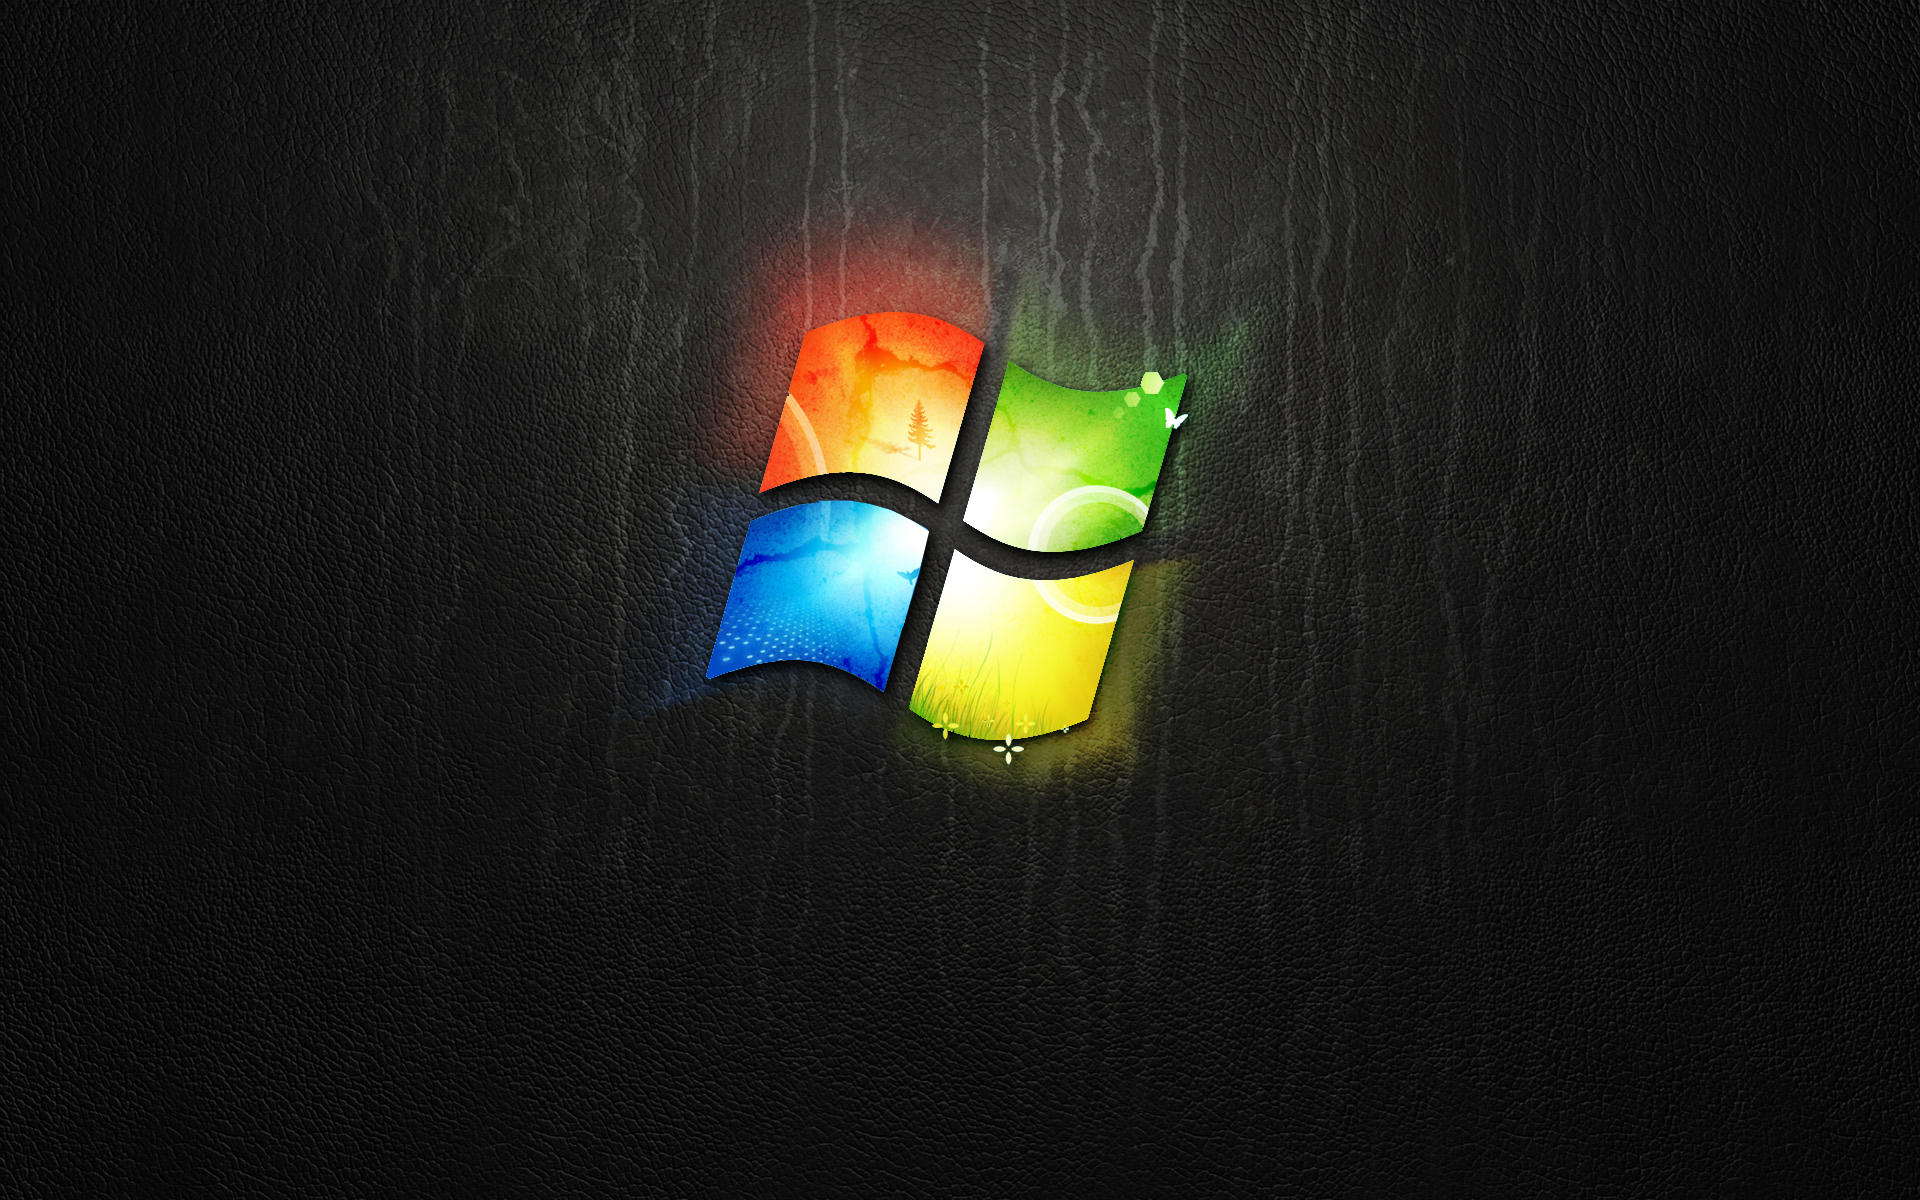 Dark Windows 7 Wallpaper by giannisgx89